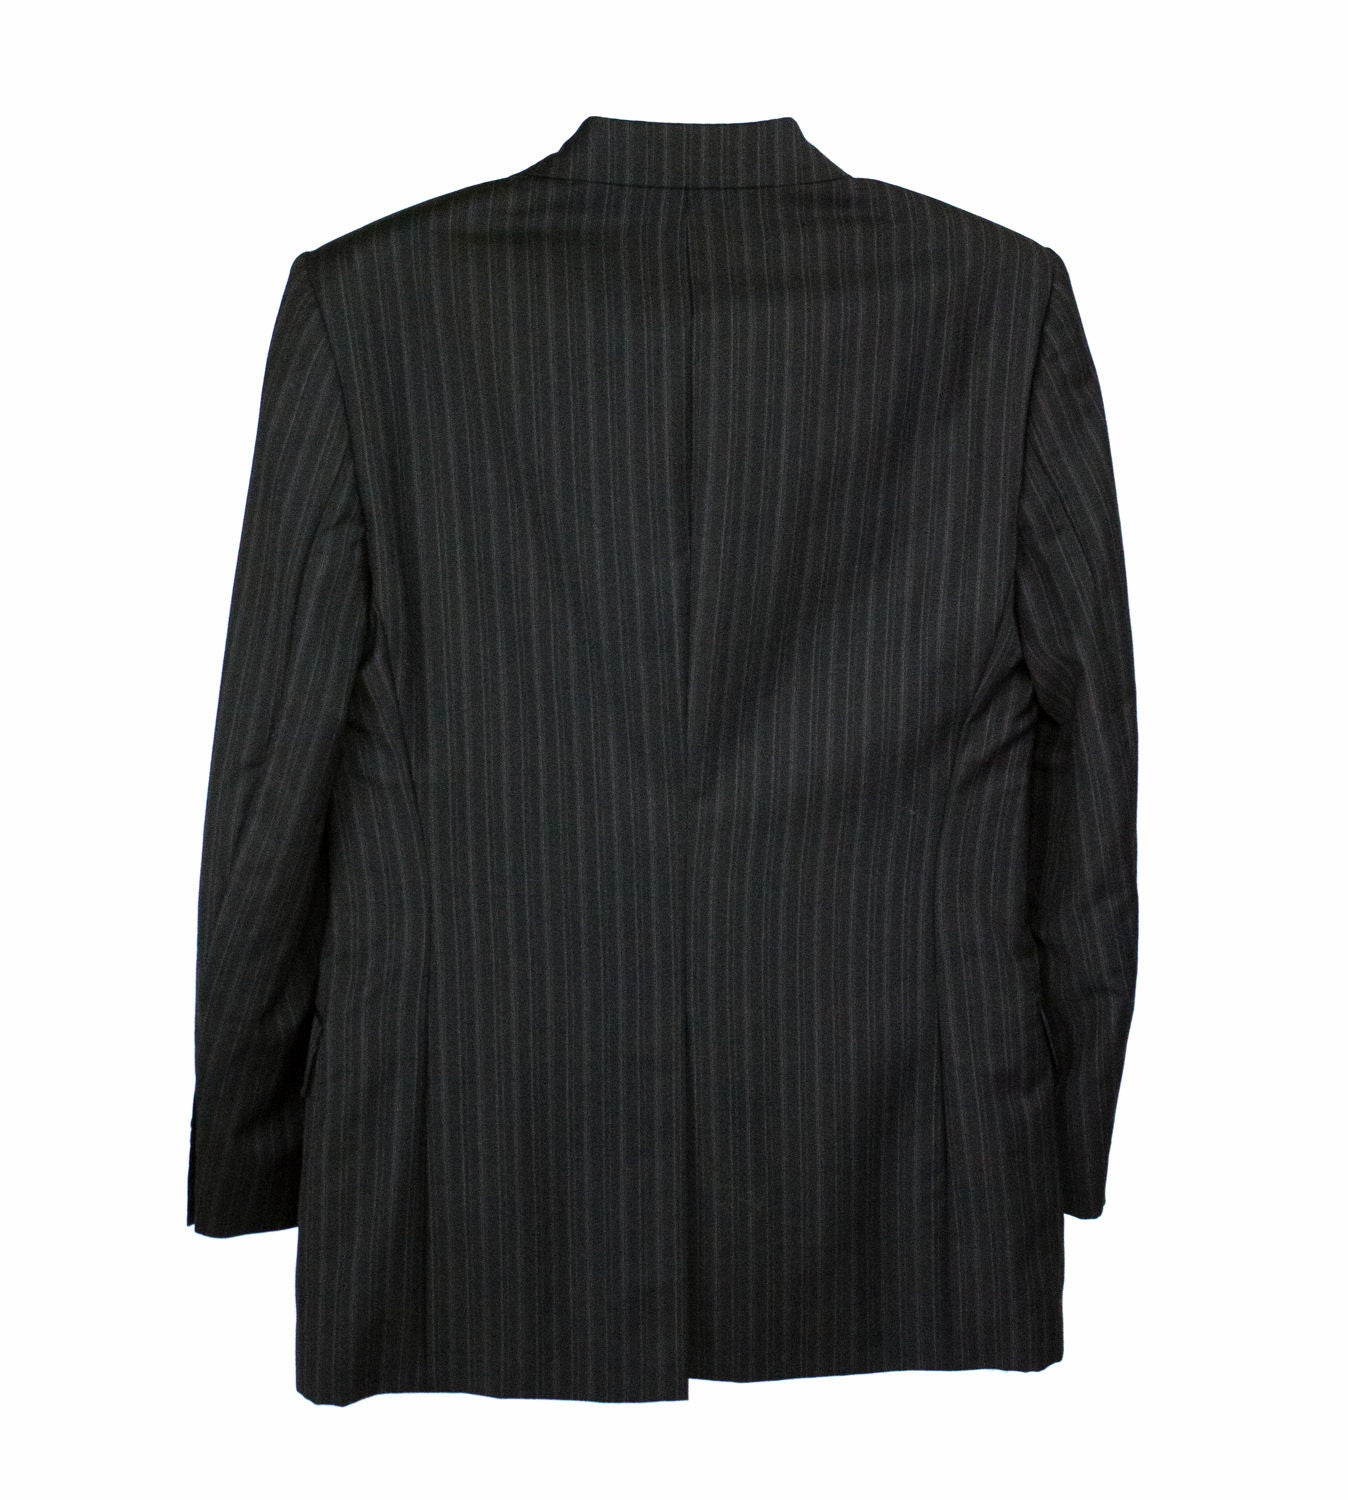 HUGO BOSS Super 100's Wool Blazer, 34R US/44 EUR - secondfirst